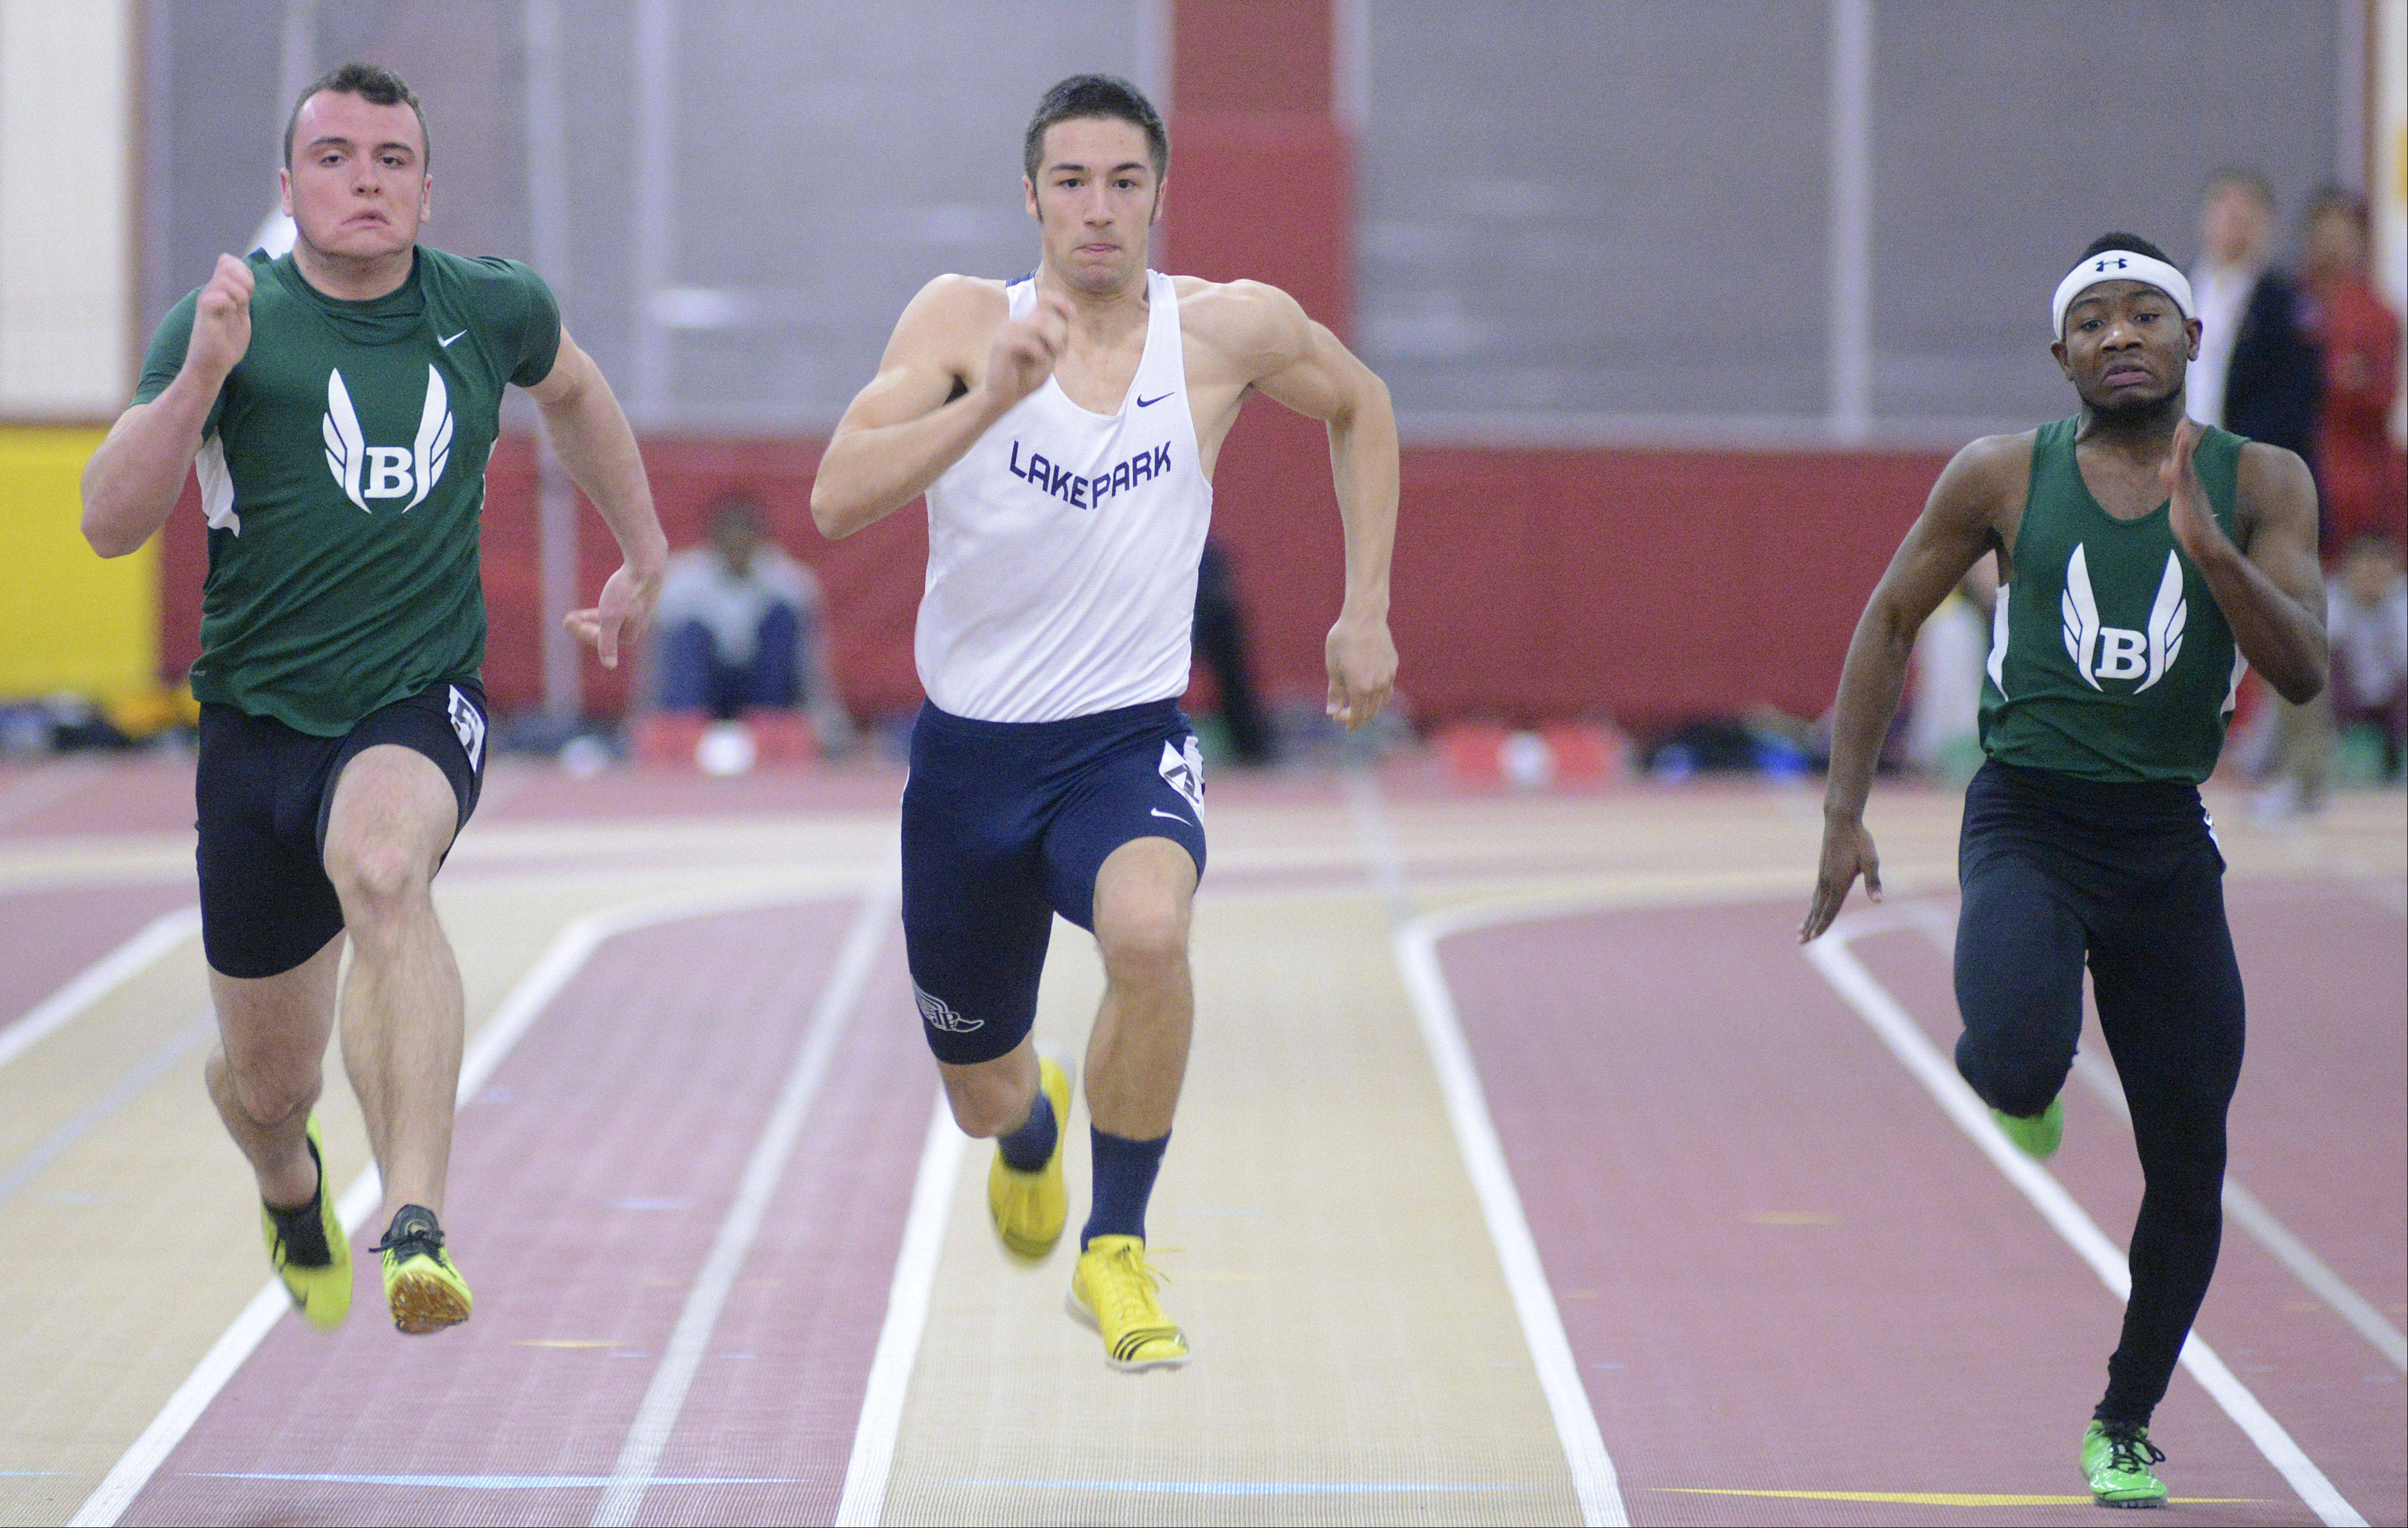 Bartlett's Hurshel Ross, Lake Park's Scott Filip and Bartlett's Aaron Everson compete in the third heat of the 55-meter dash prelims at the Upstate Eight Conference indoor meet at Batavia on Saturday.